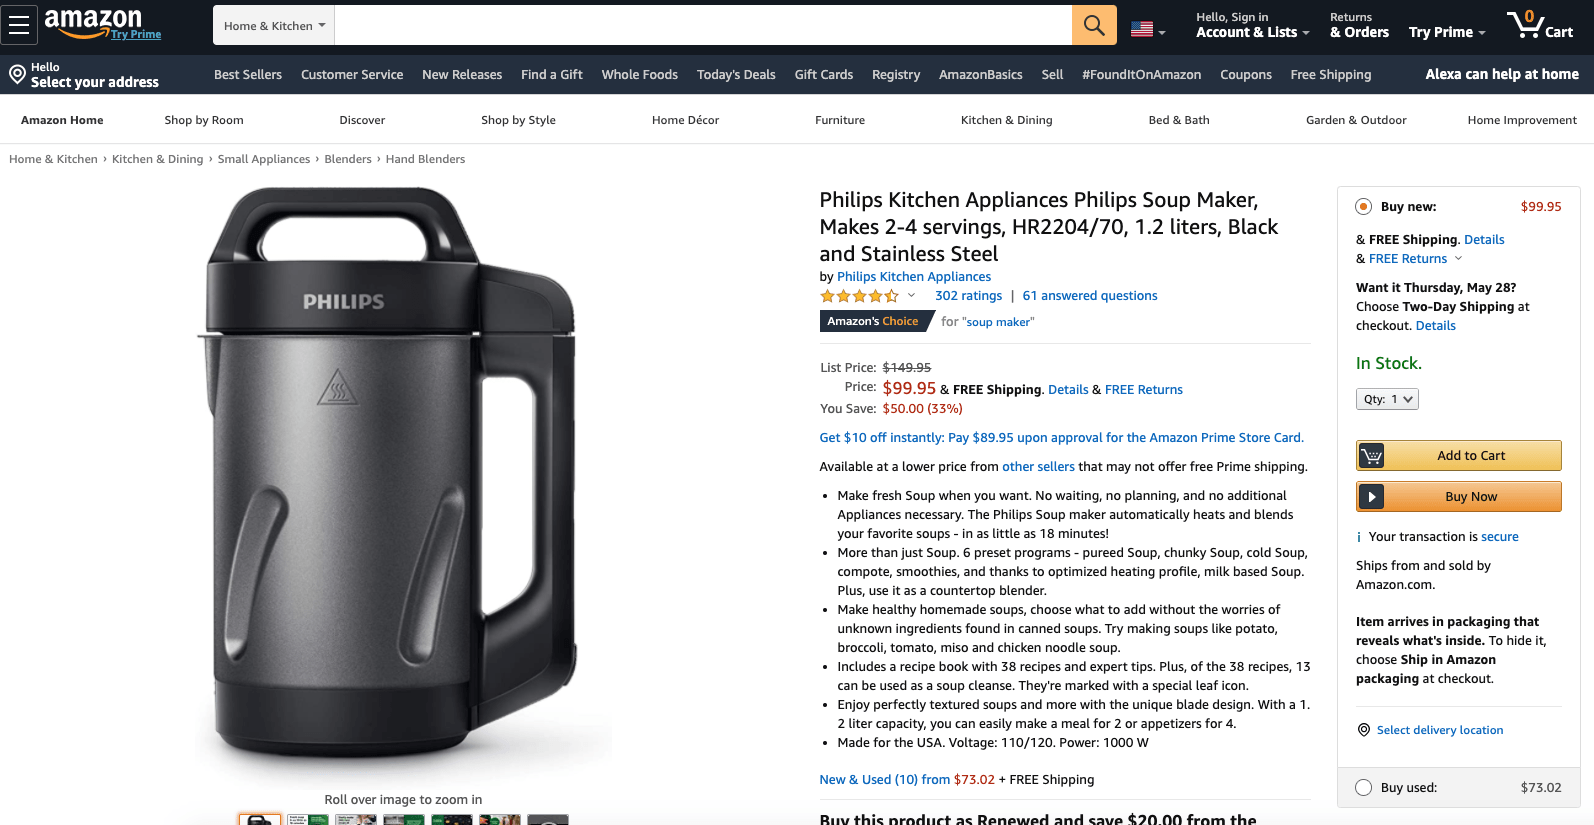 Philips stainless steel soup maker Amazon listing